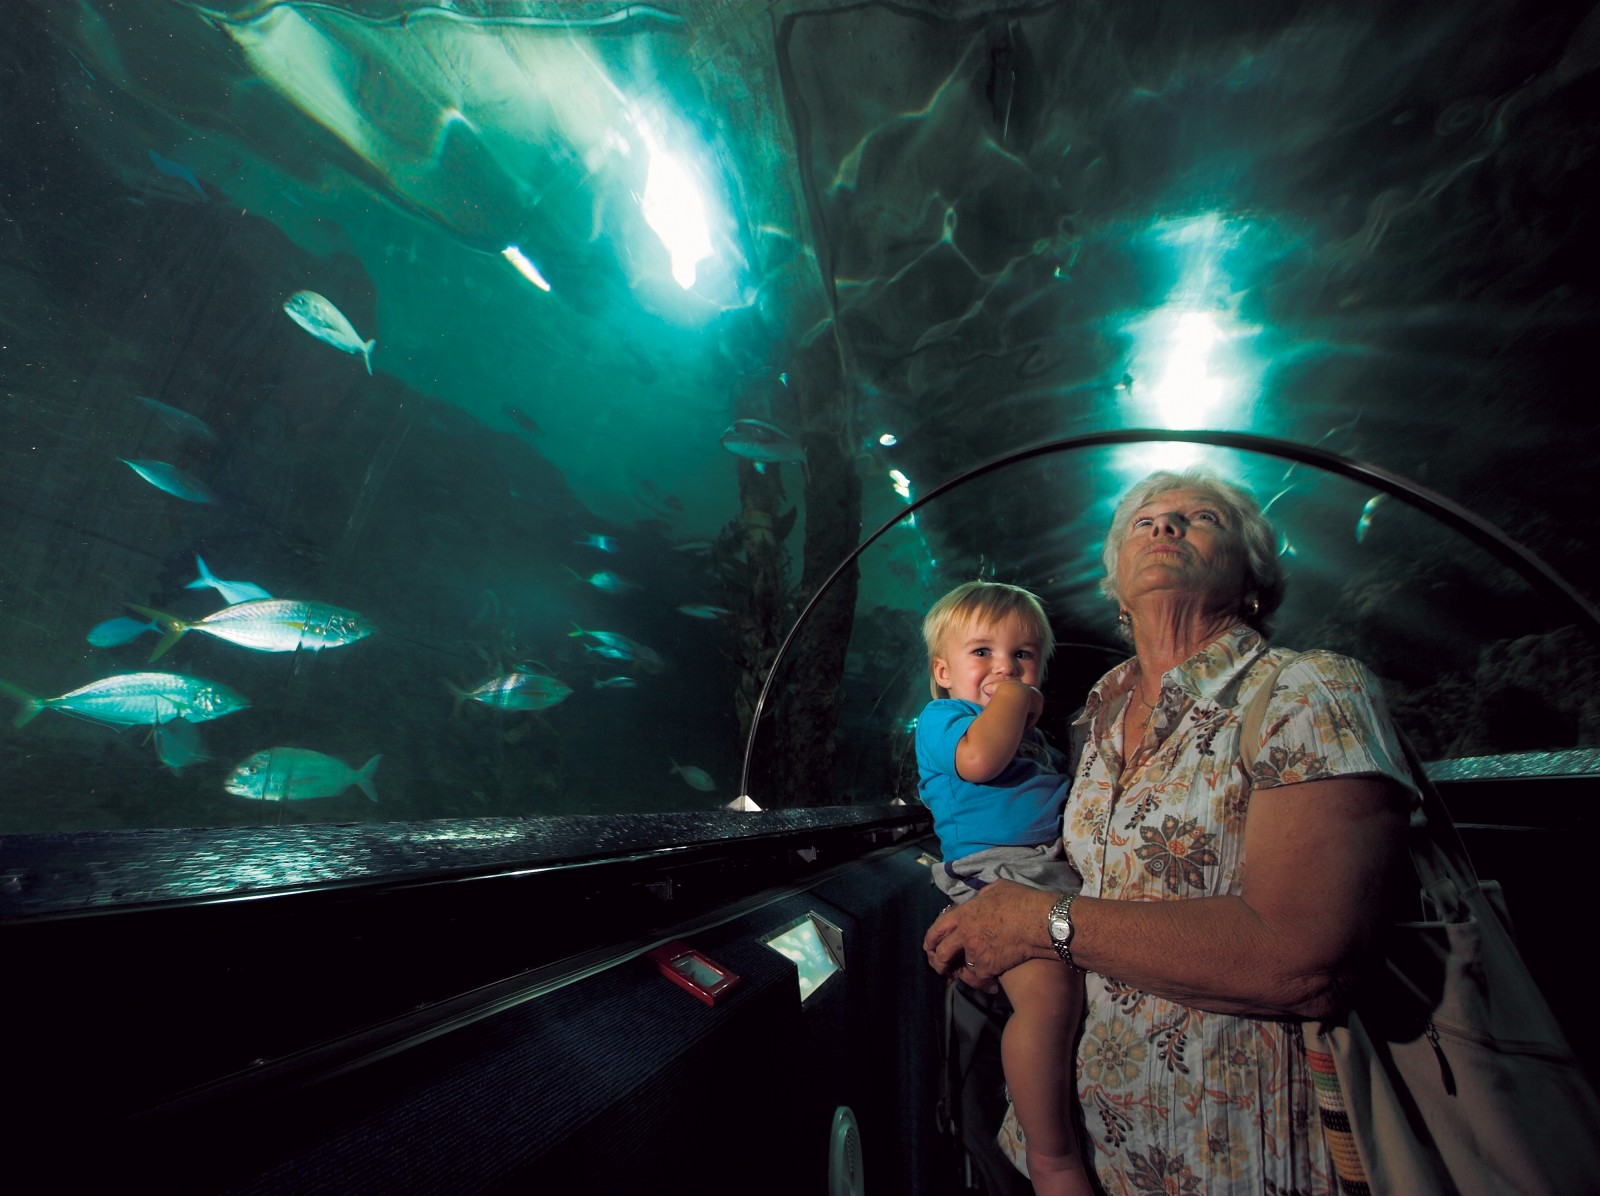 Kelly Tarlton's Underwater World opened in January 1985 and became an instant success. Millions have now passed through its doors and it is considered the country's leading tourist attraction.